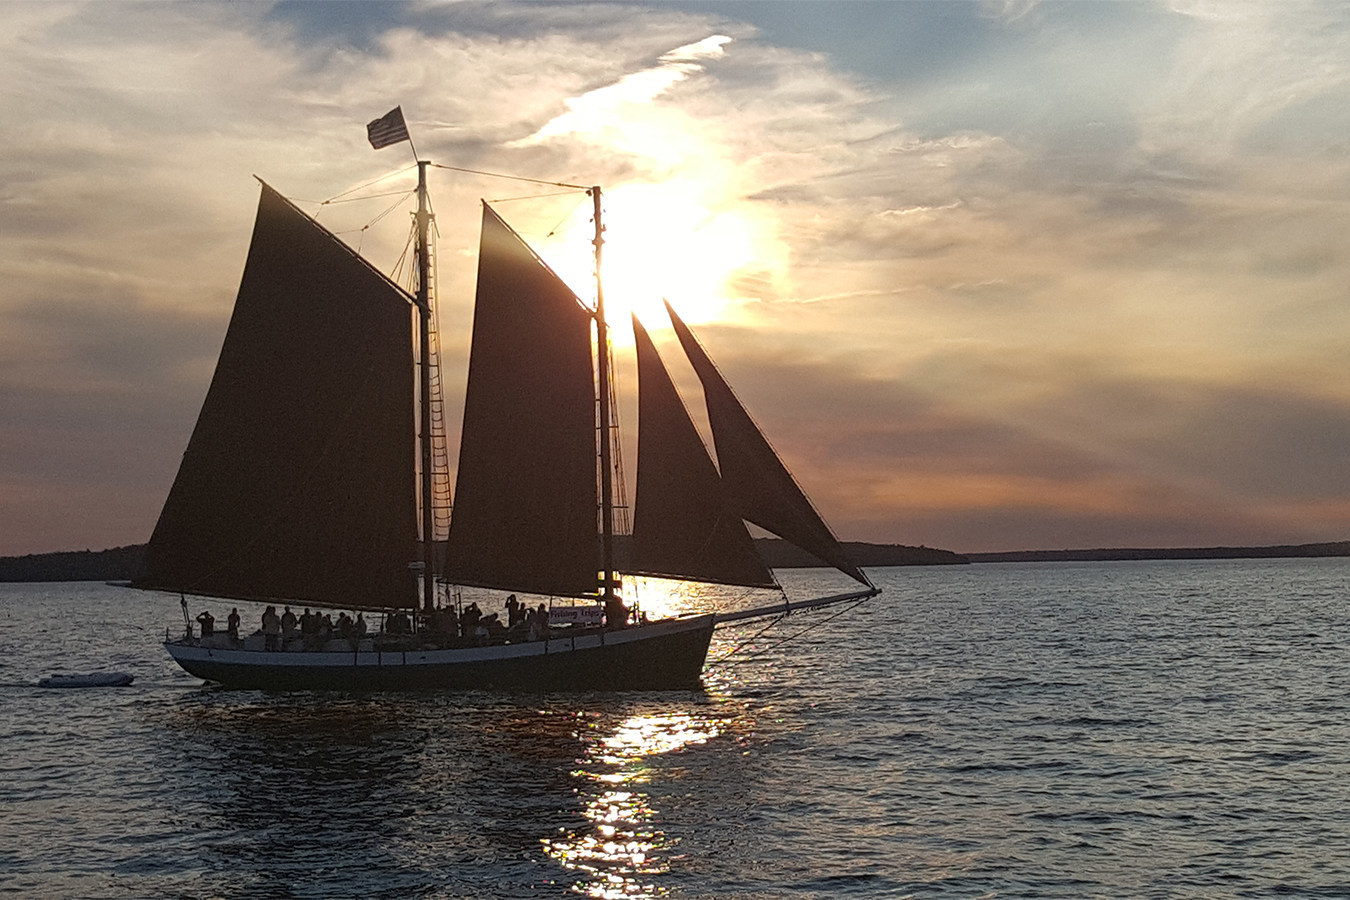 On the all-new Adventures by Disney vacation to New England, guests will explore Bar Harbor, Maine, as they set sail aboard a schooner. The new eight-day, seven-night family vacation, debuting in 2022, will feature famous sites and hidden gems of Vermont, New Hampshire and Maine. (Disney)